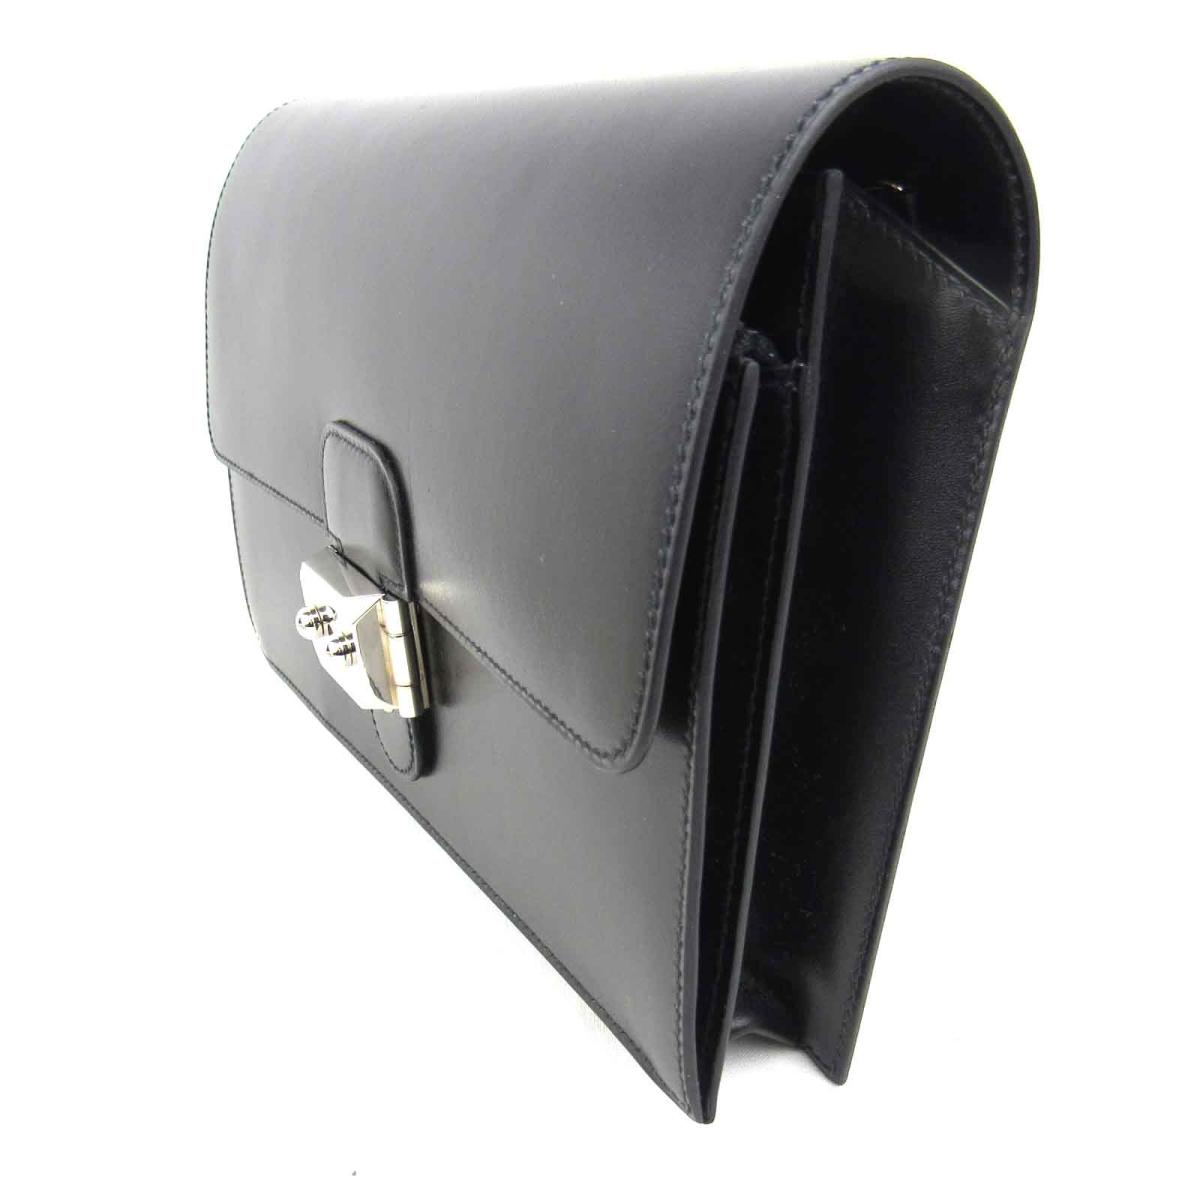 38318d4ceff8 (Free shipping) Auth HERMES Pochette Jet Second Clutch bag Box calf leather  Black SHW Used Vintage